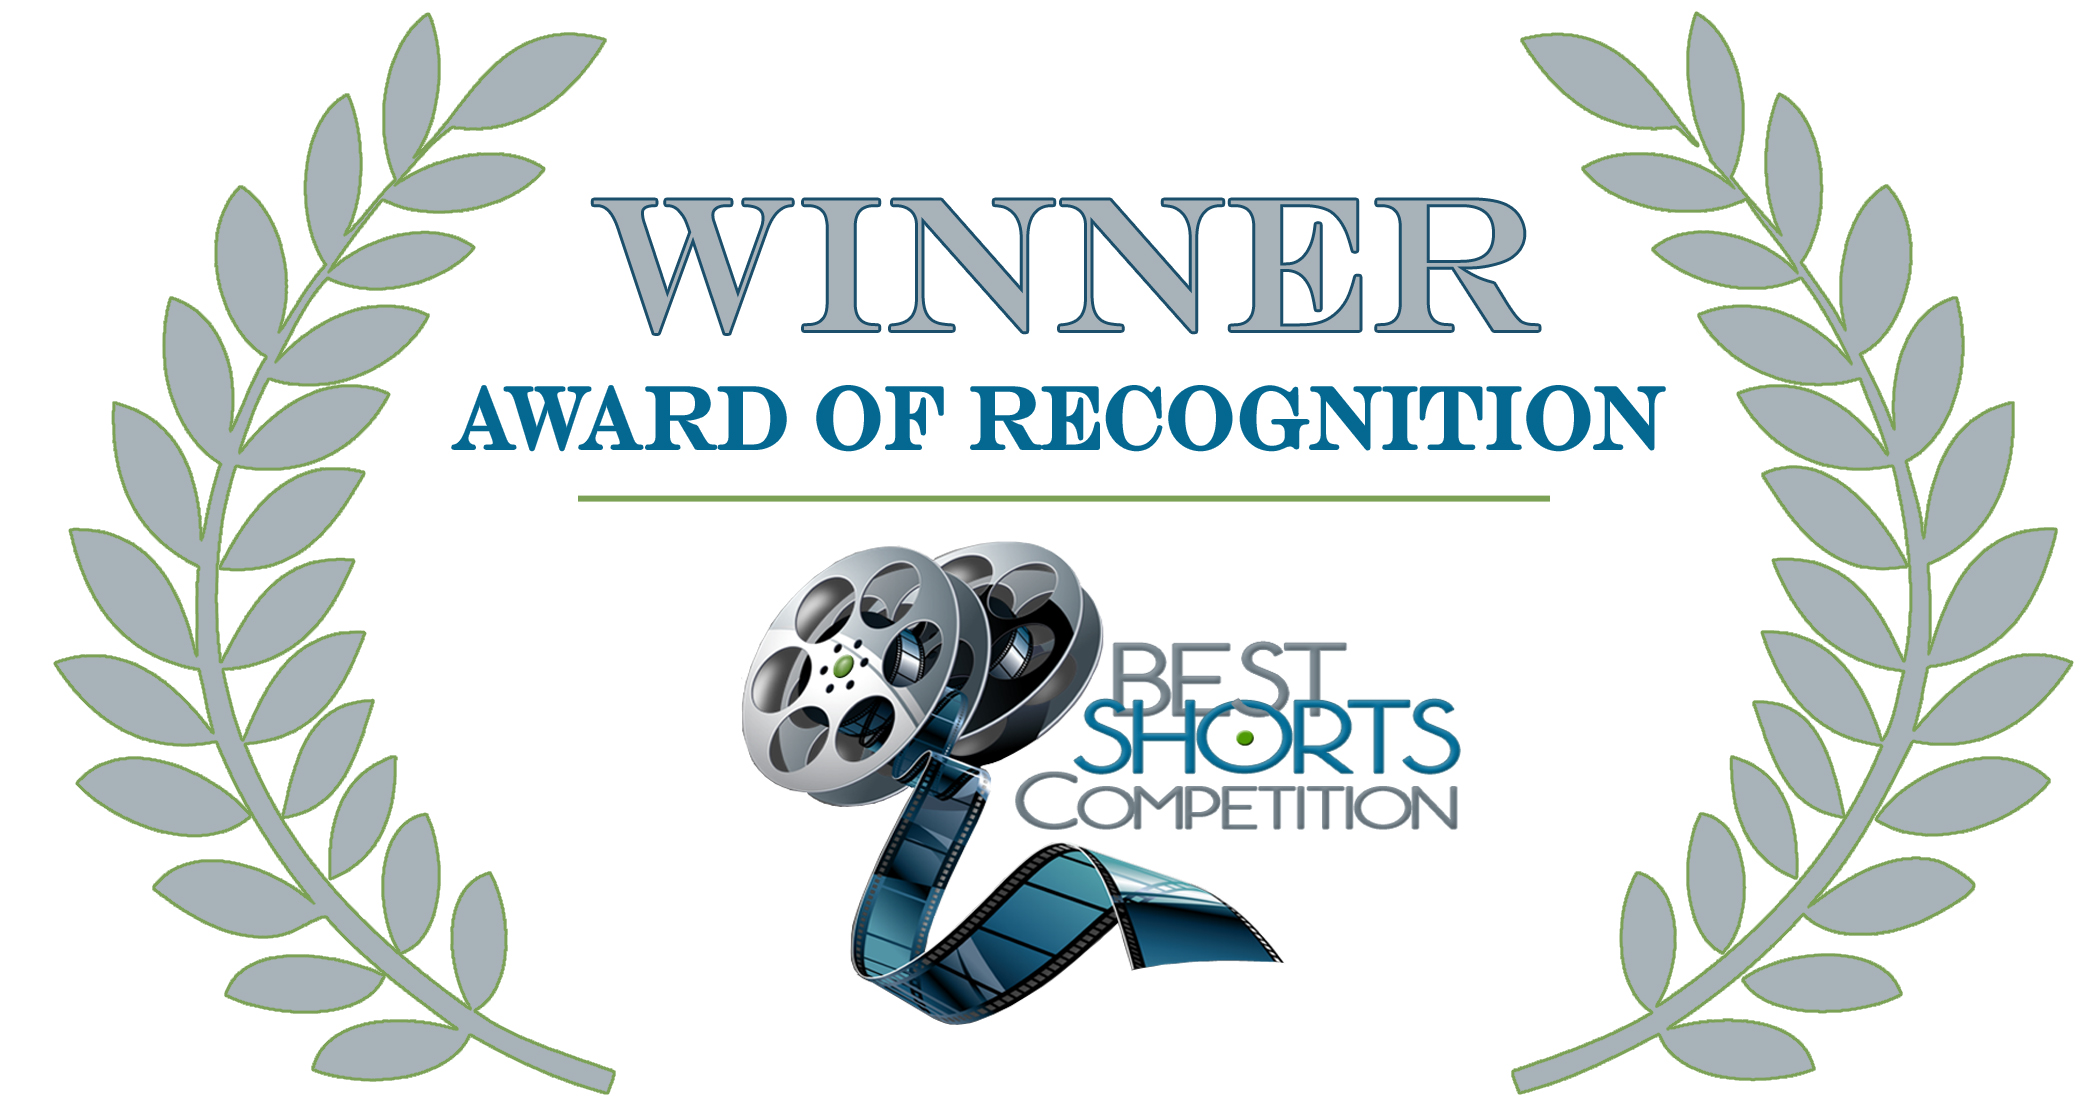 BEST SHORTS REcognition logo template